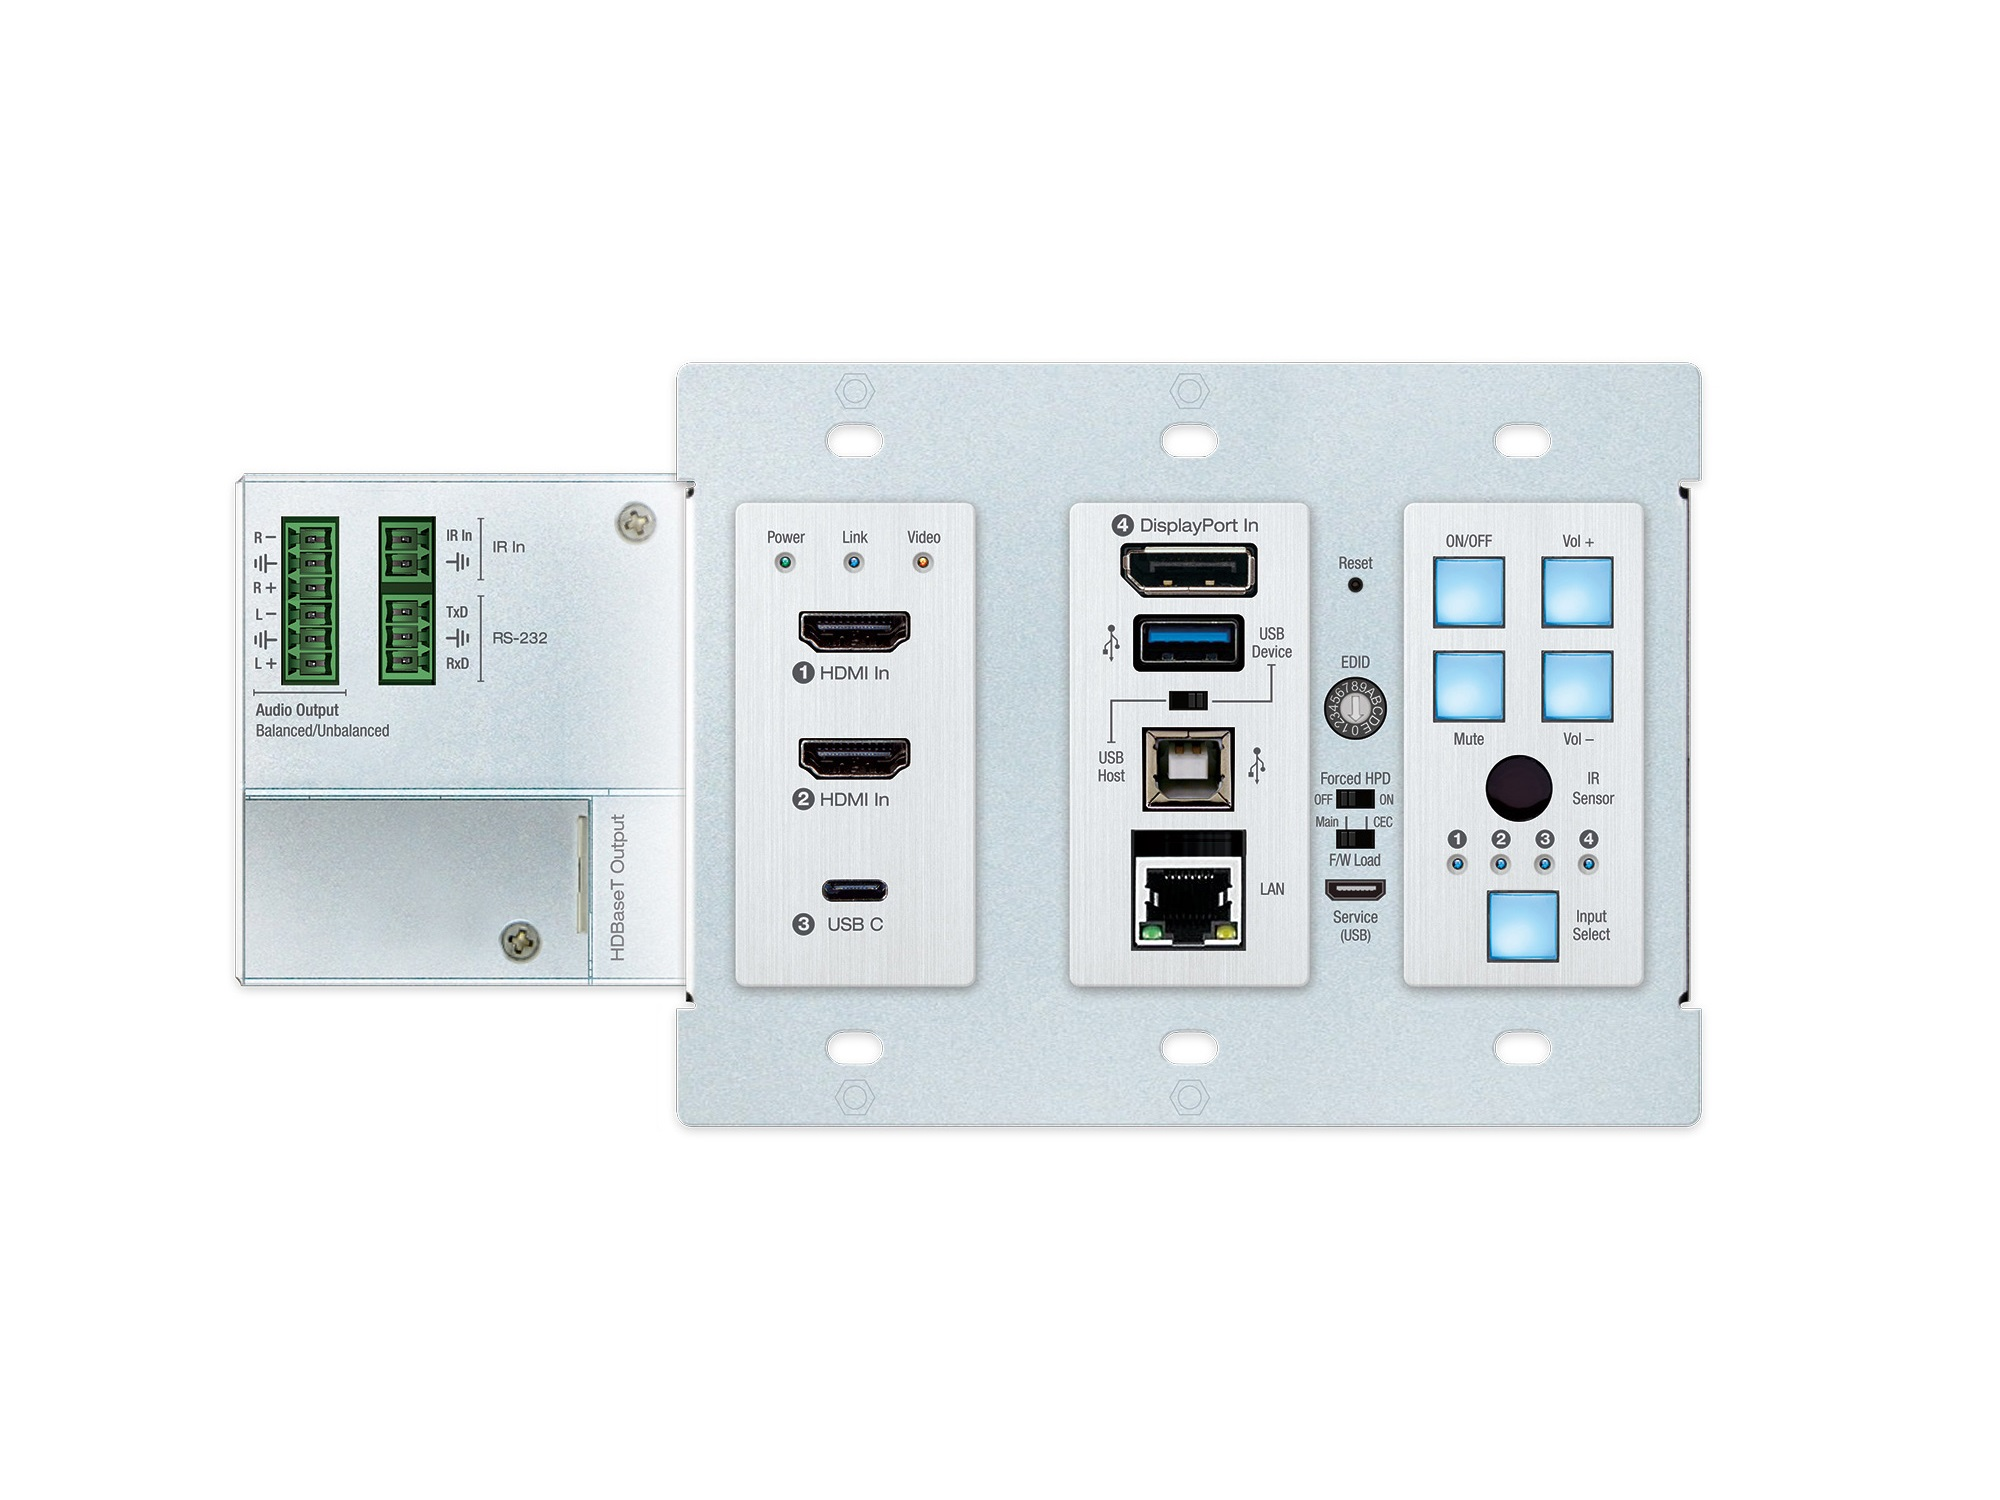 KD-X4x1WUTx 4x1 4K/18G 2xHDMI/DP/USB-C HDBT Wall Plate Switcher/Transmitter with CEC/ARC/Audio/IR/RS-232/PoH by Key Digital